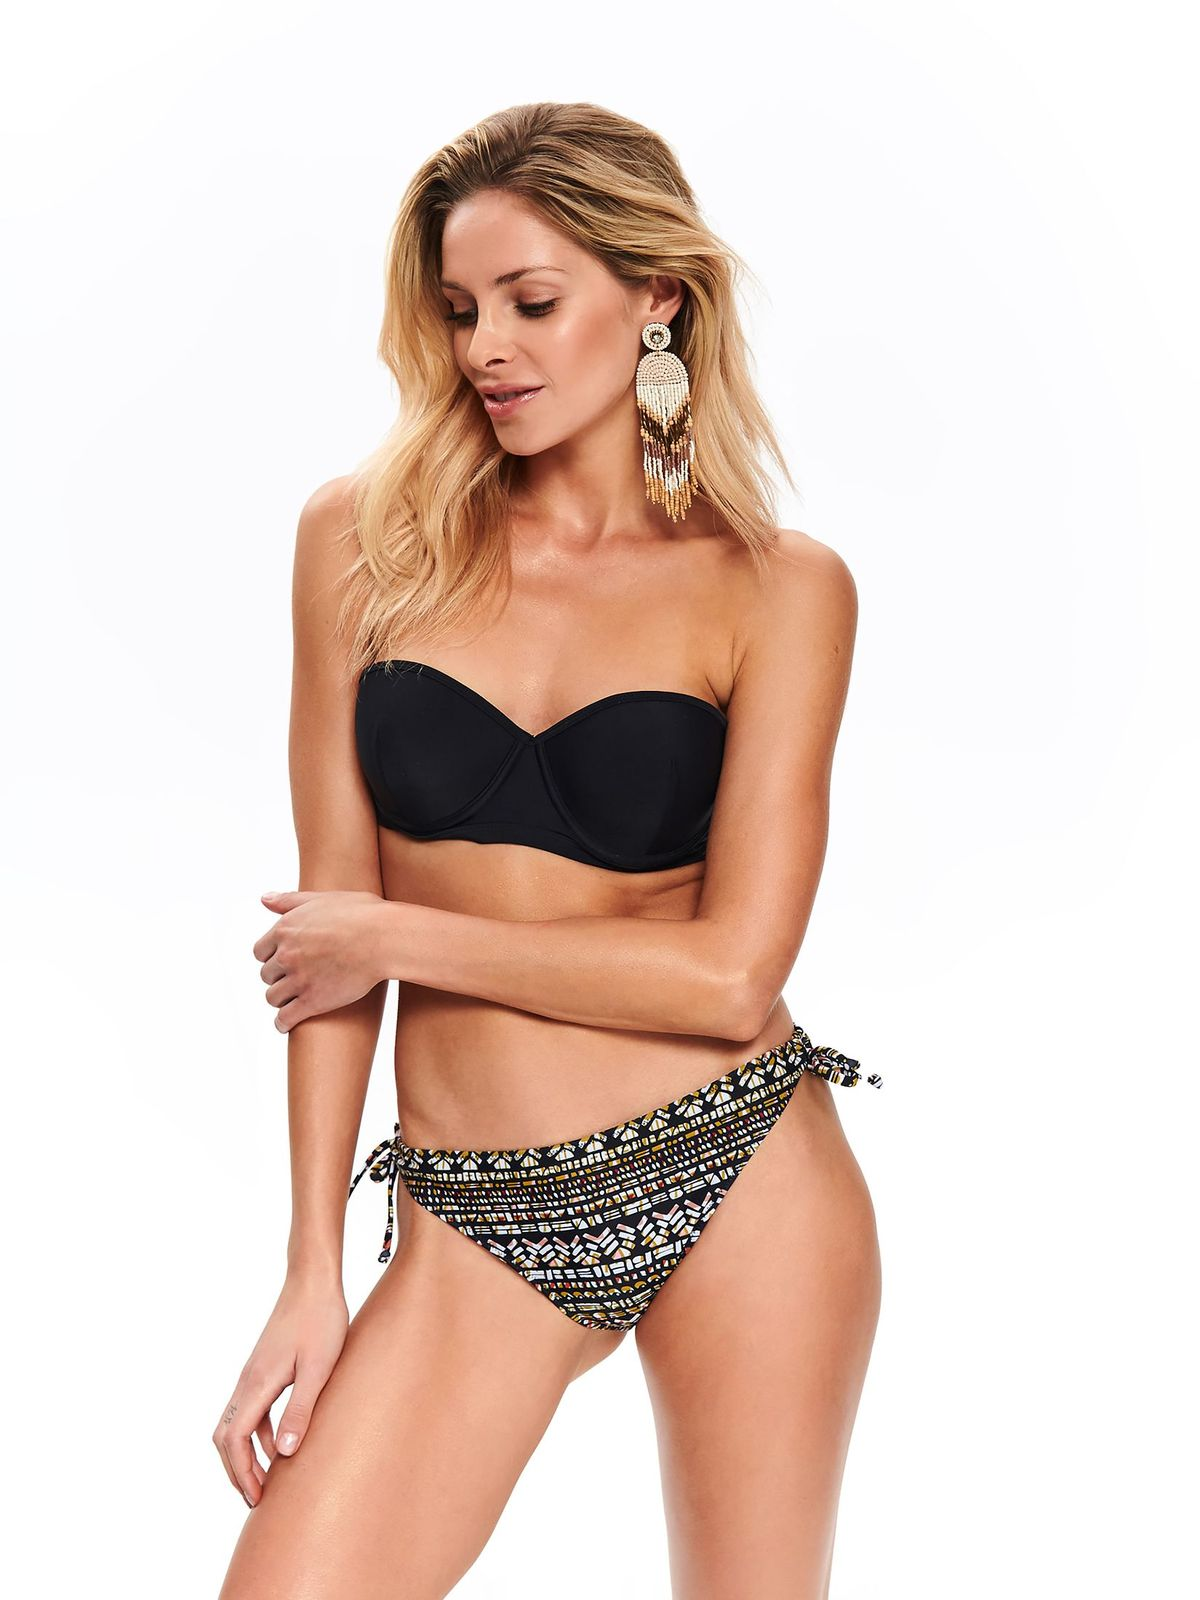 Sutien de baie negru Top Secret tip balconet